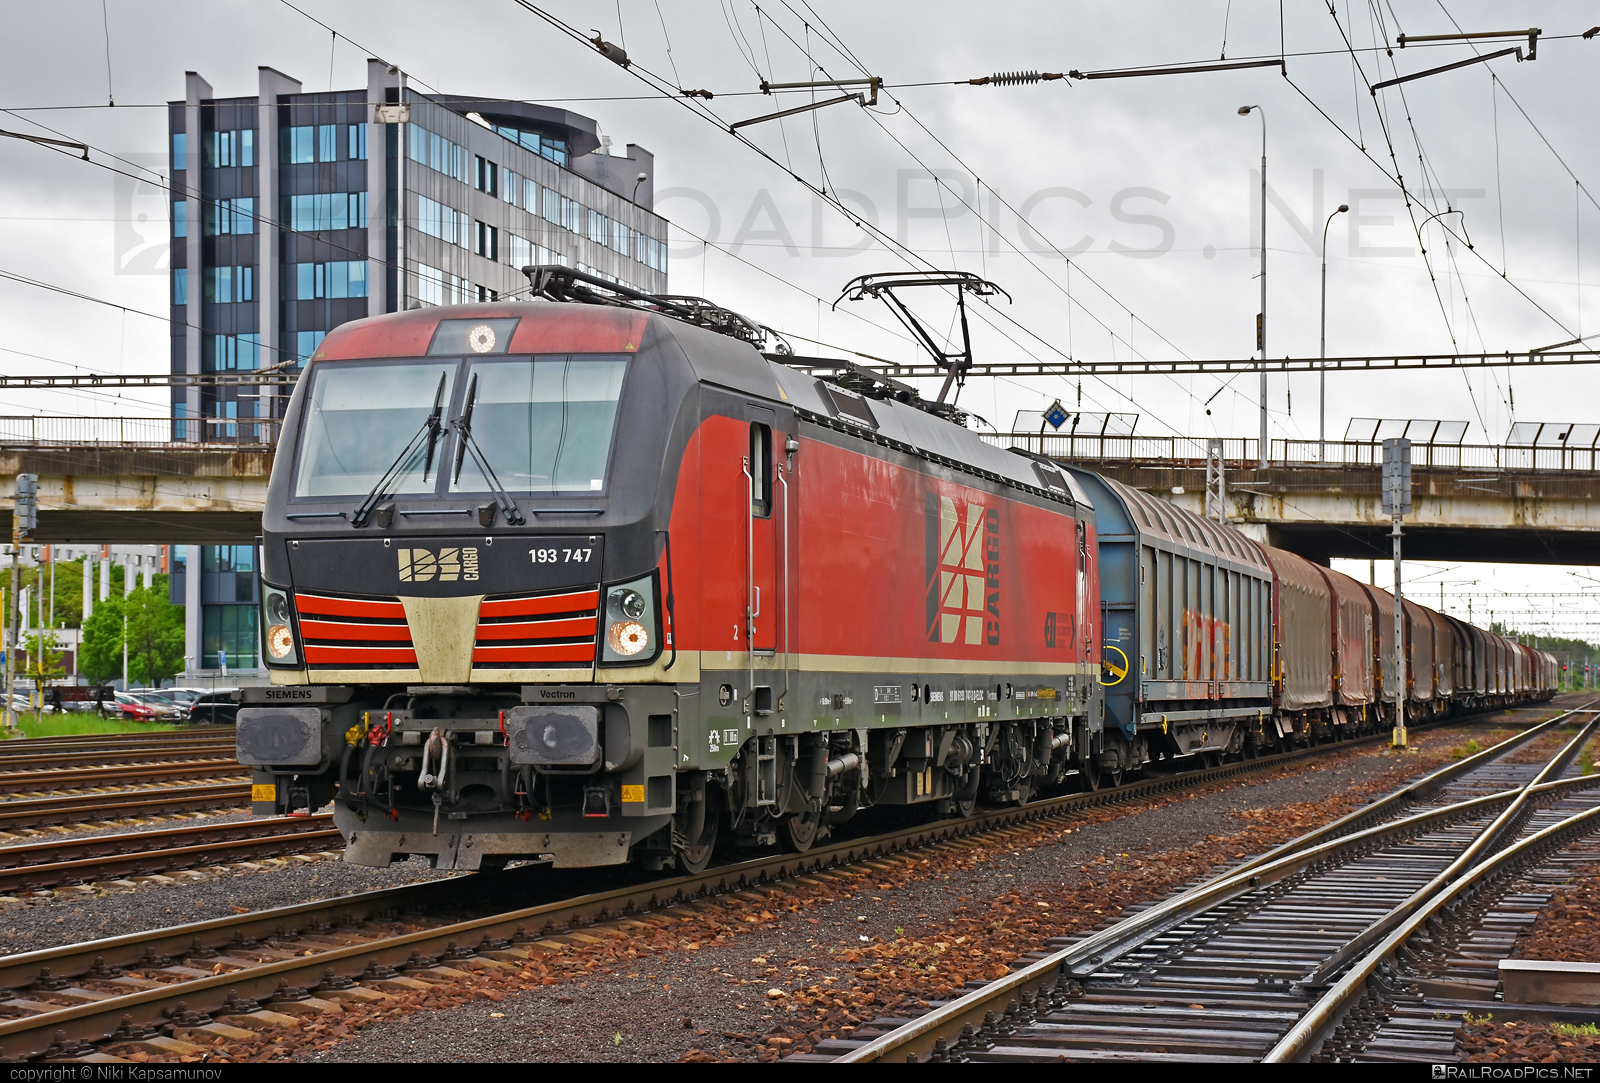 Siemens Vectron MS - 193 747 operated by IDS CARGO a. s. #ell #ellgermany #eloc #europeanlocomotiveleasing #idsc #idscargo #siemens #siemensvectron #siemensvectronms #vectron #vectronms